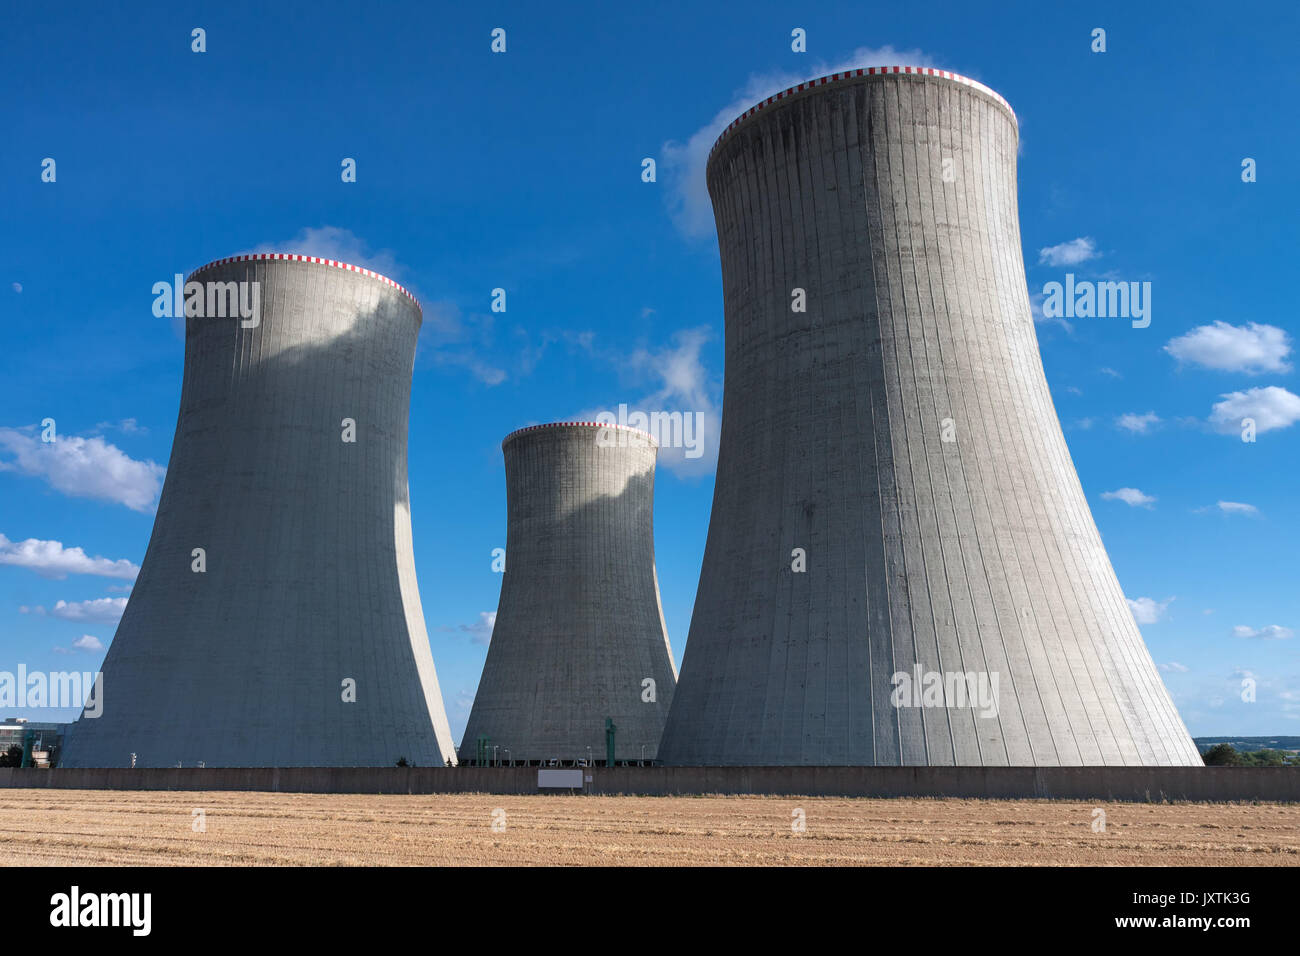 Three Chimneys Of Nuclear Power Station In The Summer Day Cooling Jxtk G